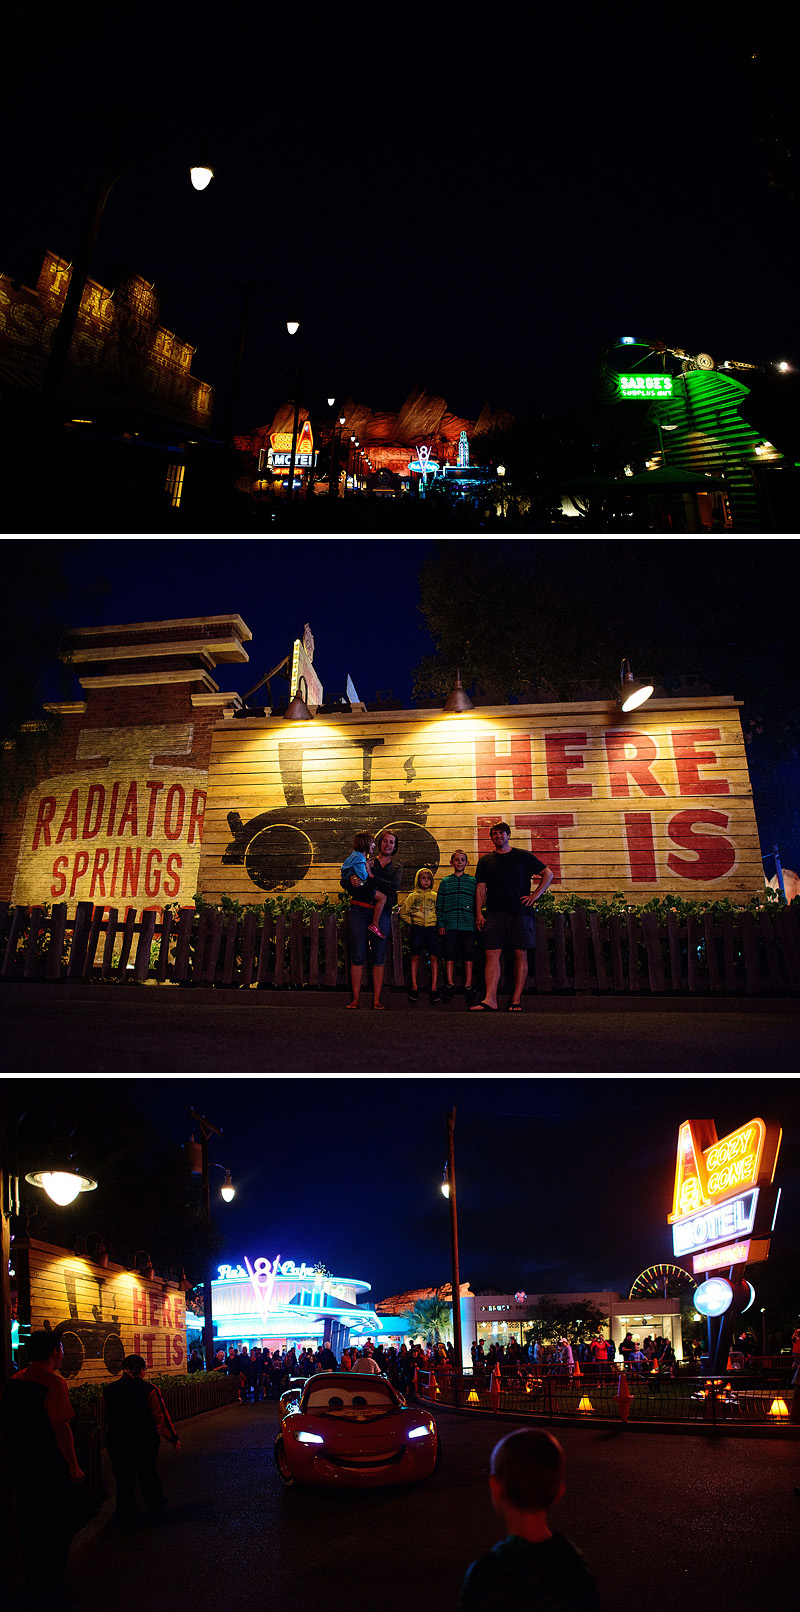 cars land lit up at night with neon signs